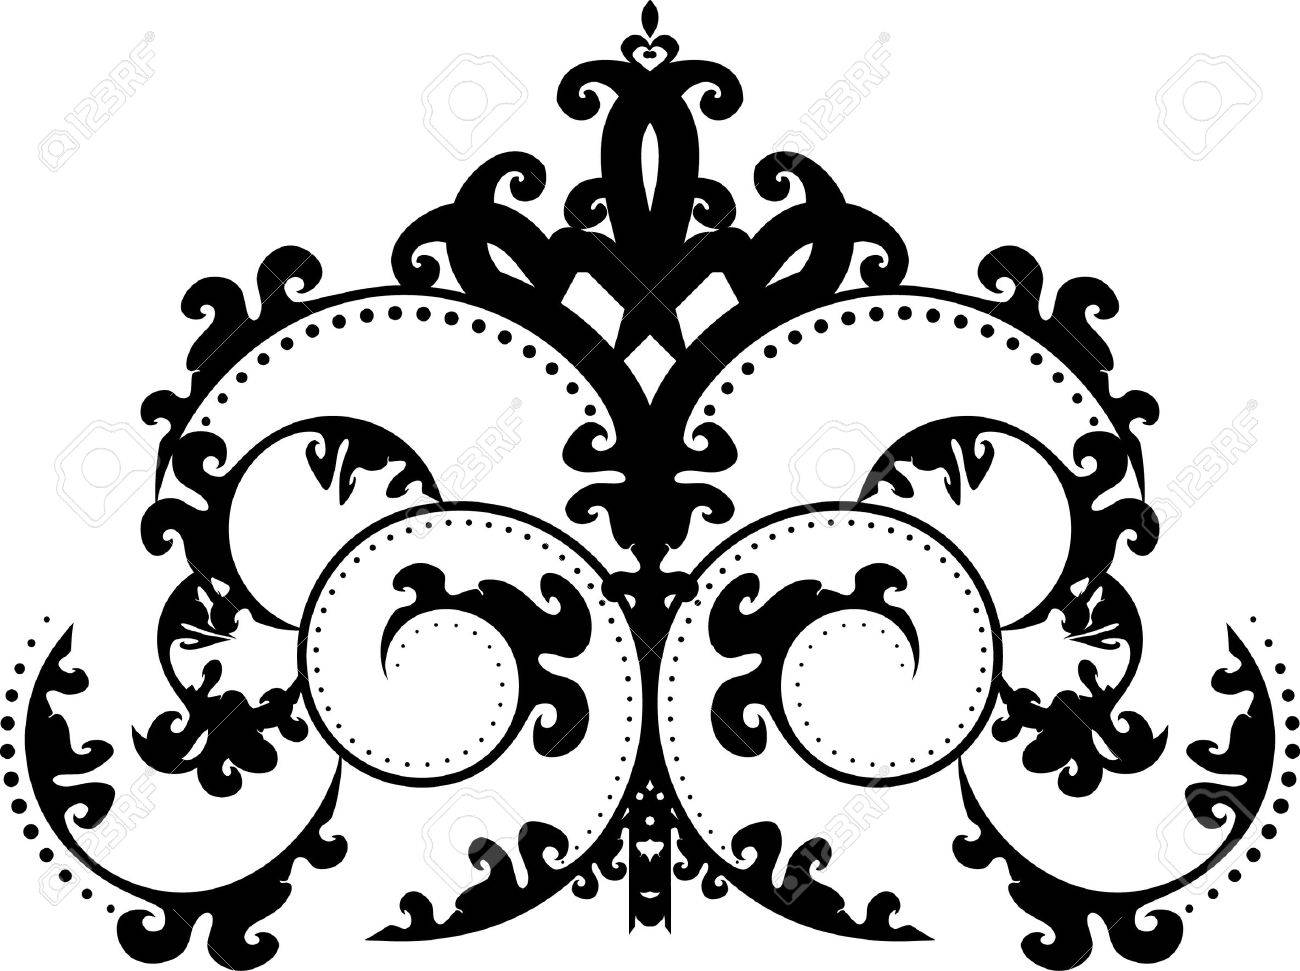 an elegant, regal, intricate vector ornament illustration royalty free  cliparts, vectors, and stock illustration. image 7592308.  123rf